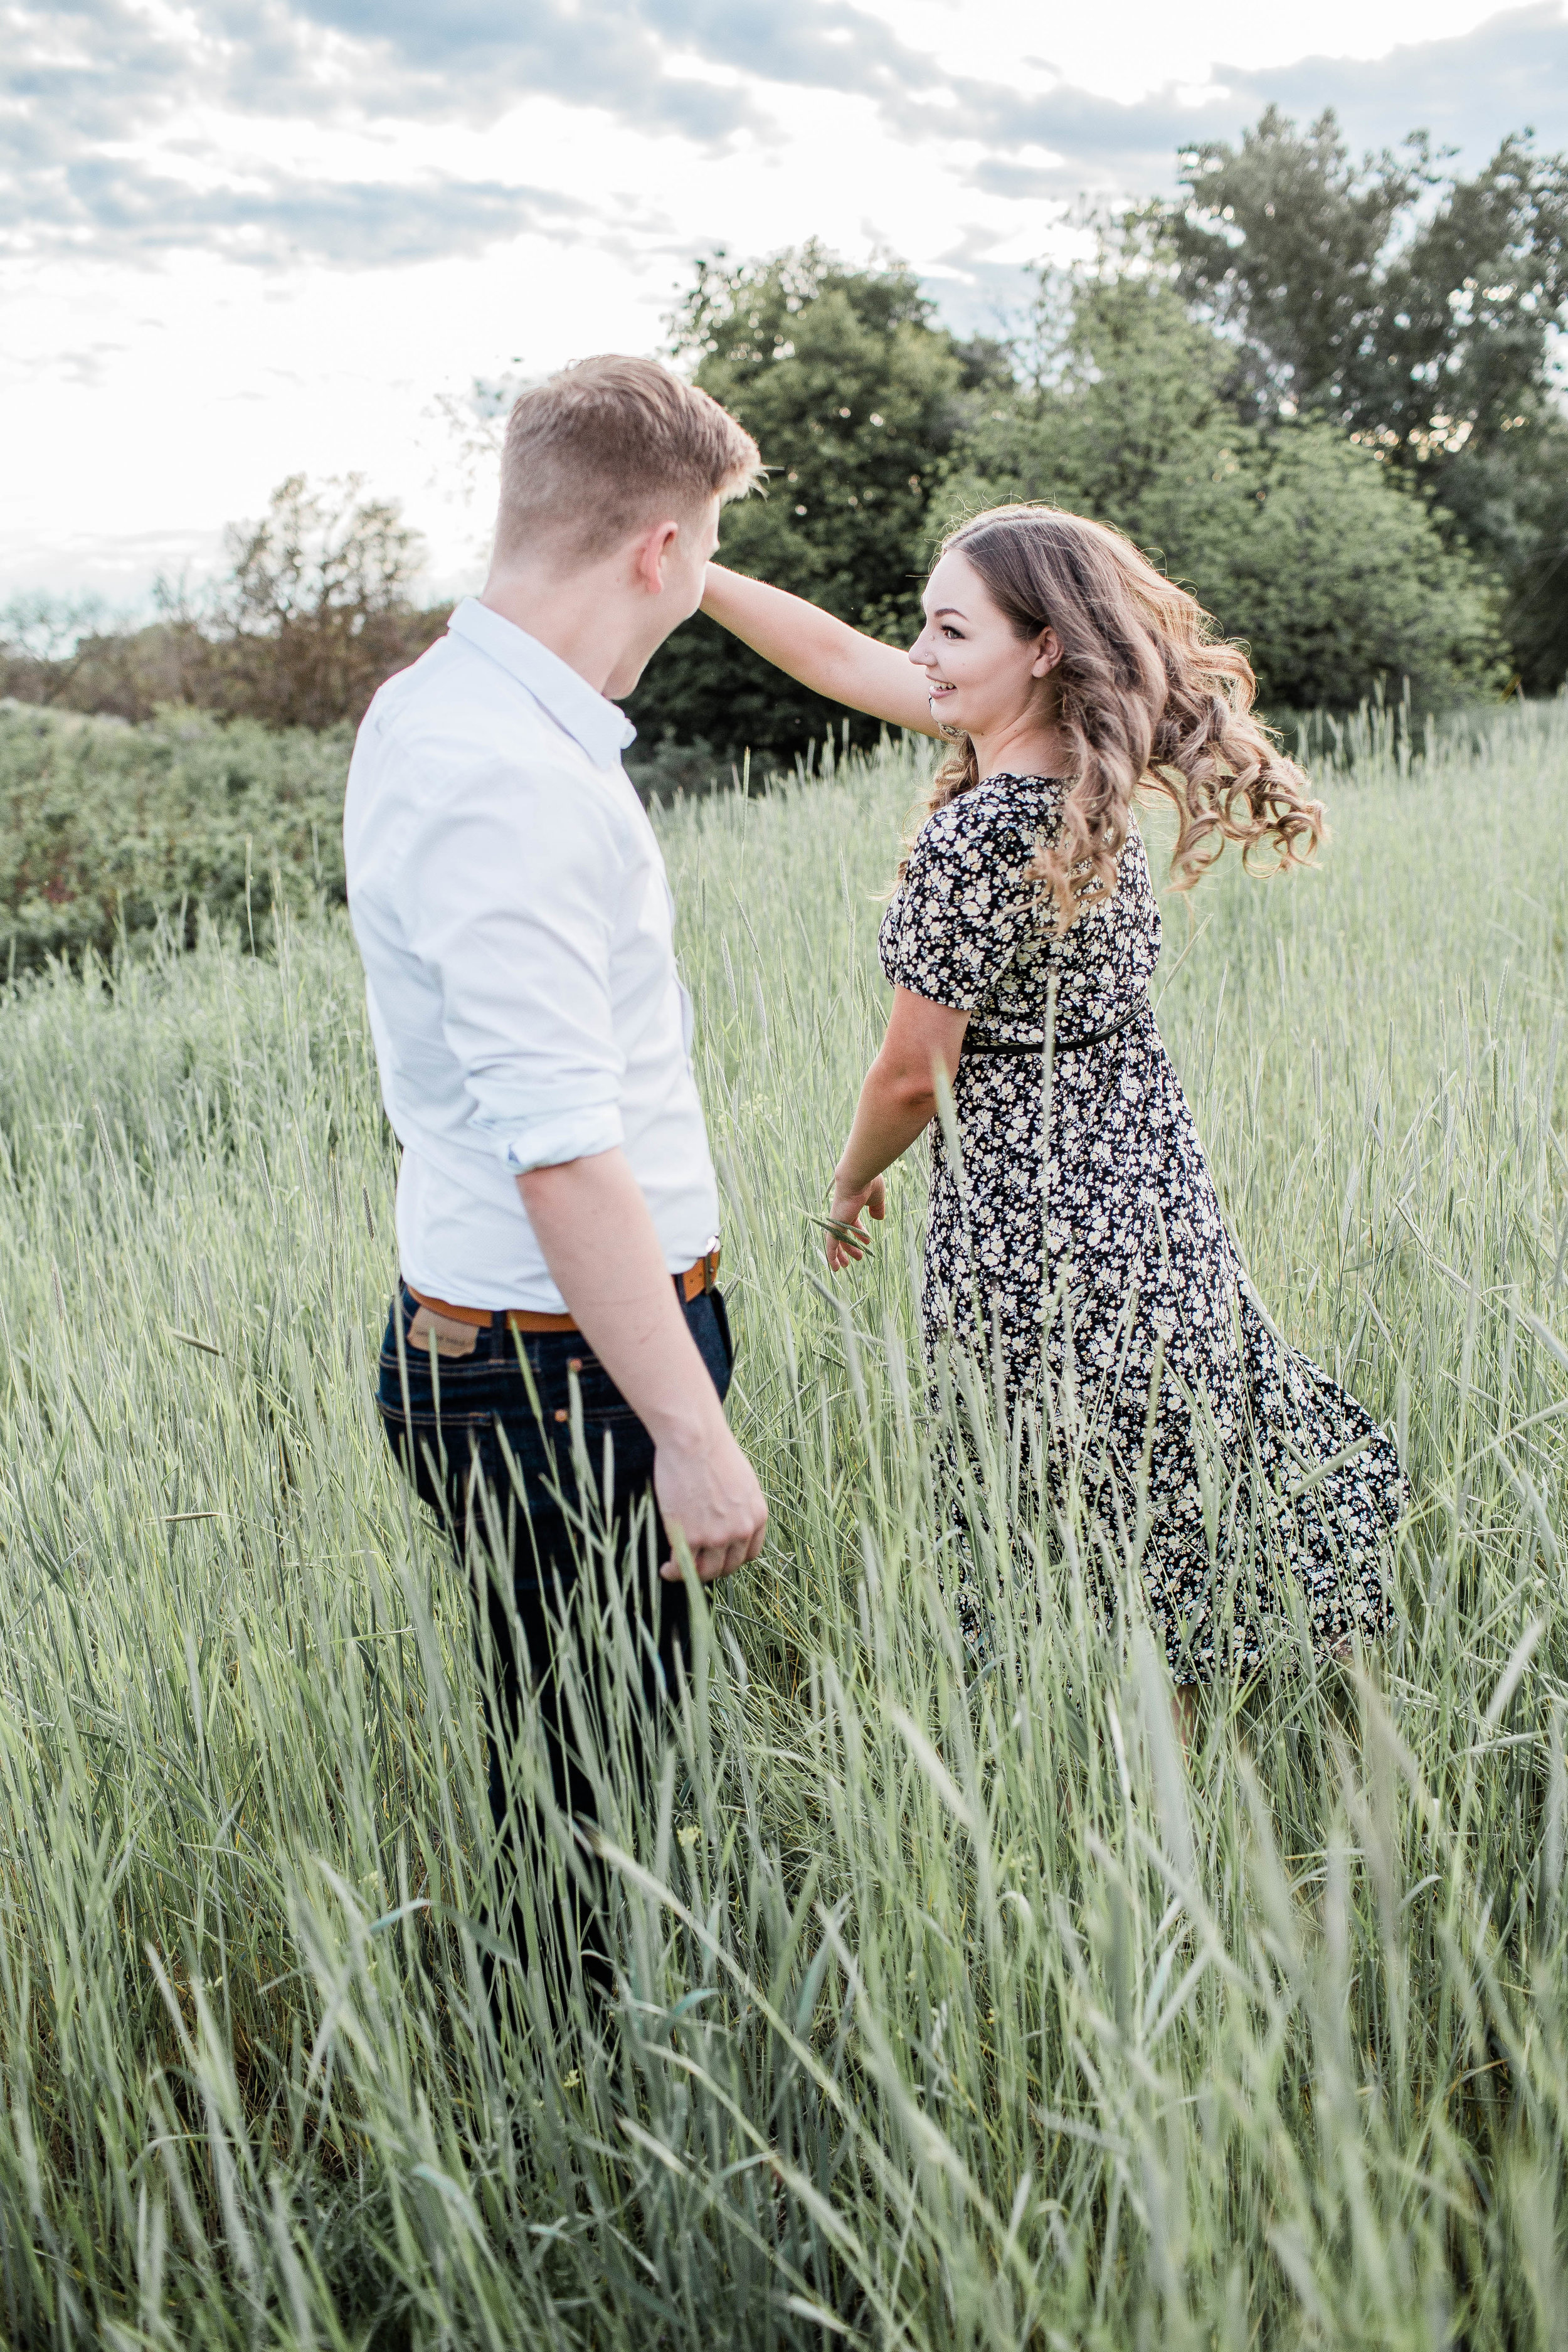 Kole-Danielle-Boise-Foothills-Summer-Engagement-Session-31.jpg